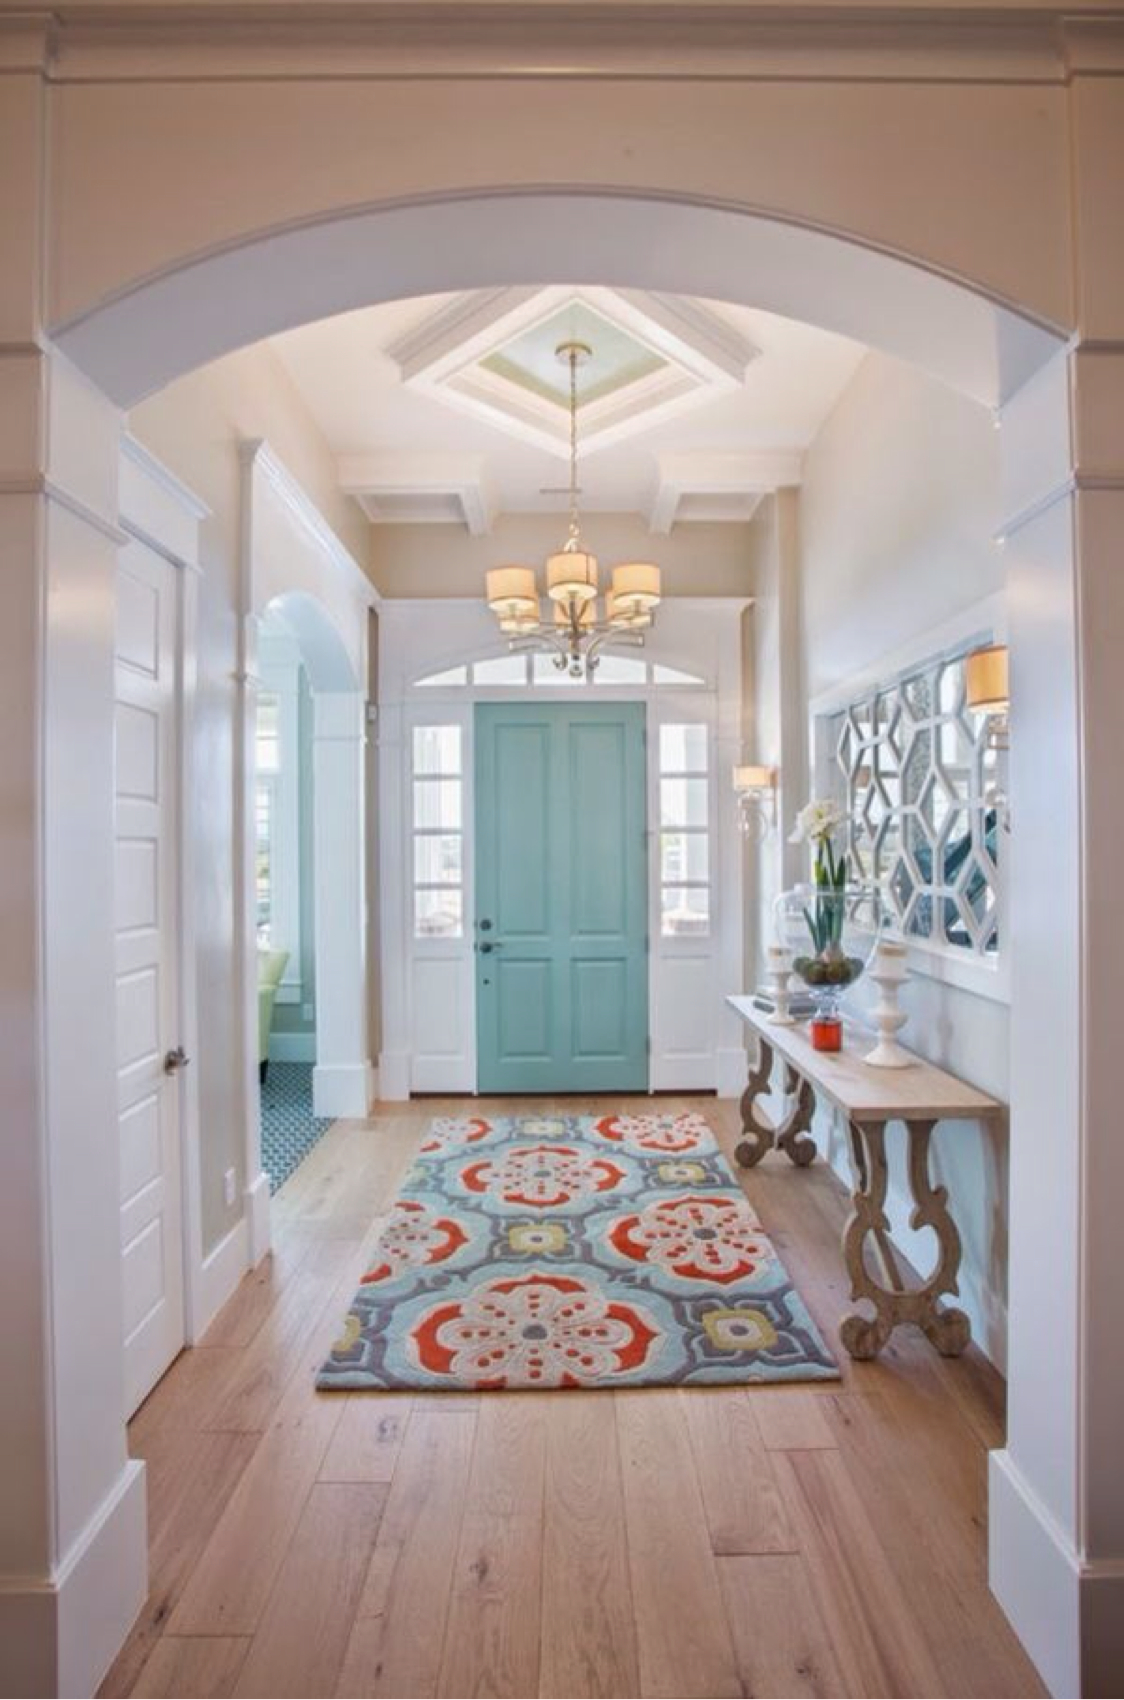 Paint Colors For Foyer And Hallway : Best rustic entryway decorating ideas and designs for